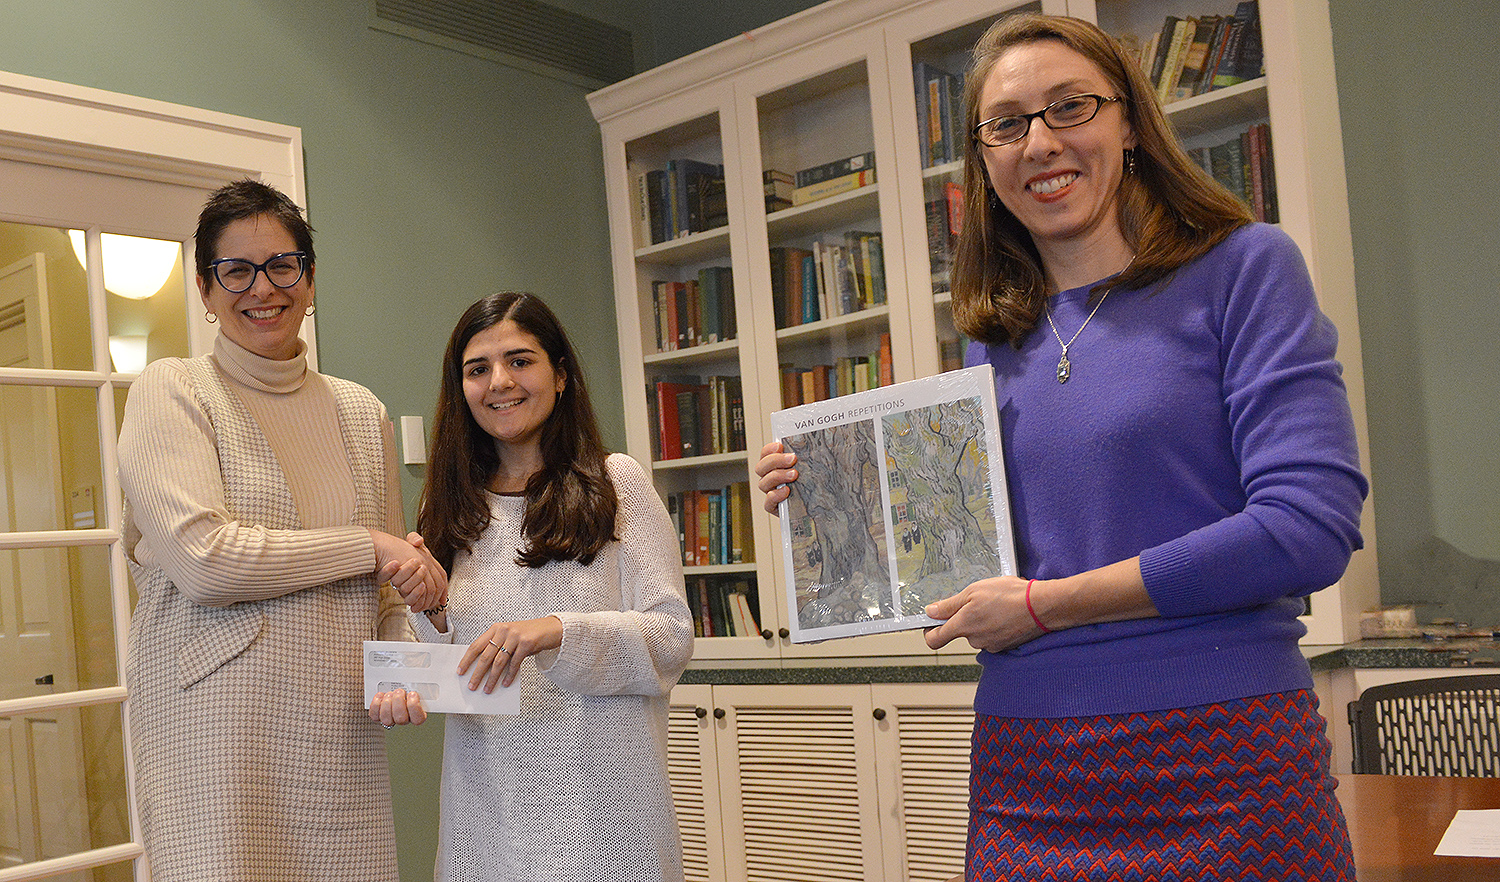 frosh honored for first year seminar essays news wesleyan during her fall semester first year seminars intensive writing course gina savoy 20